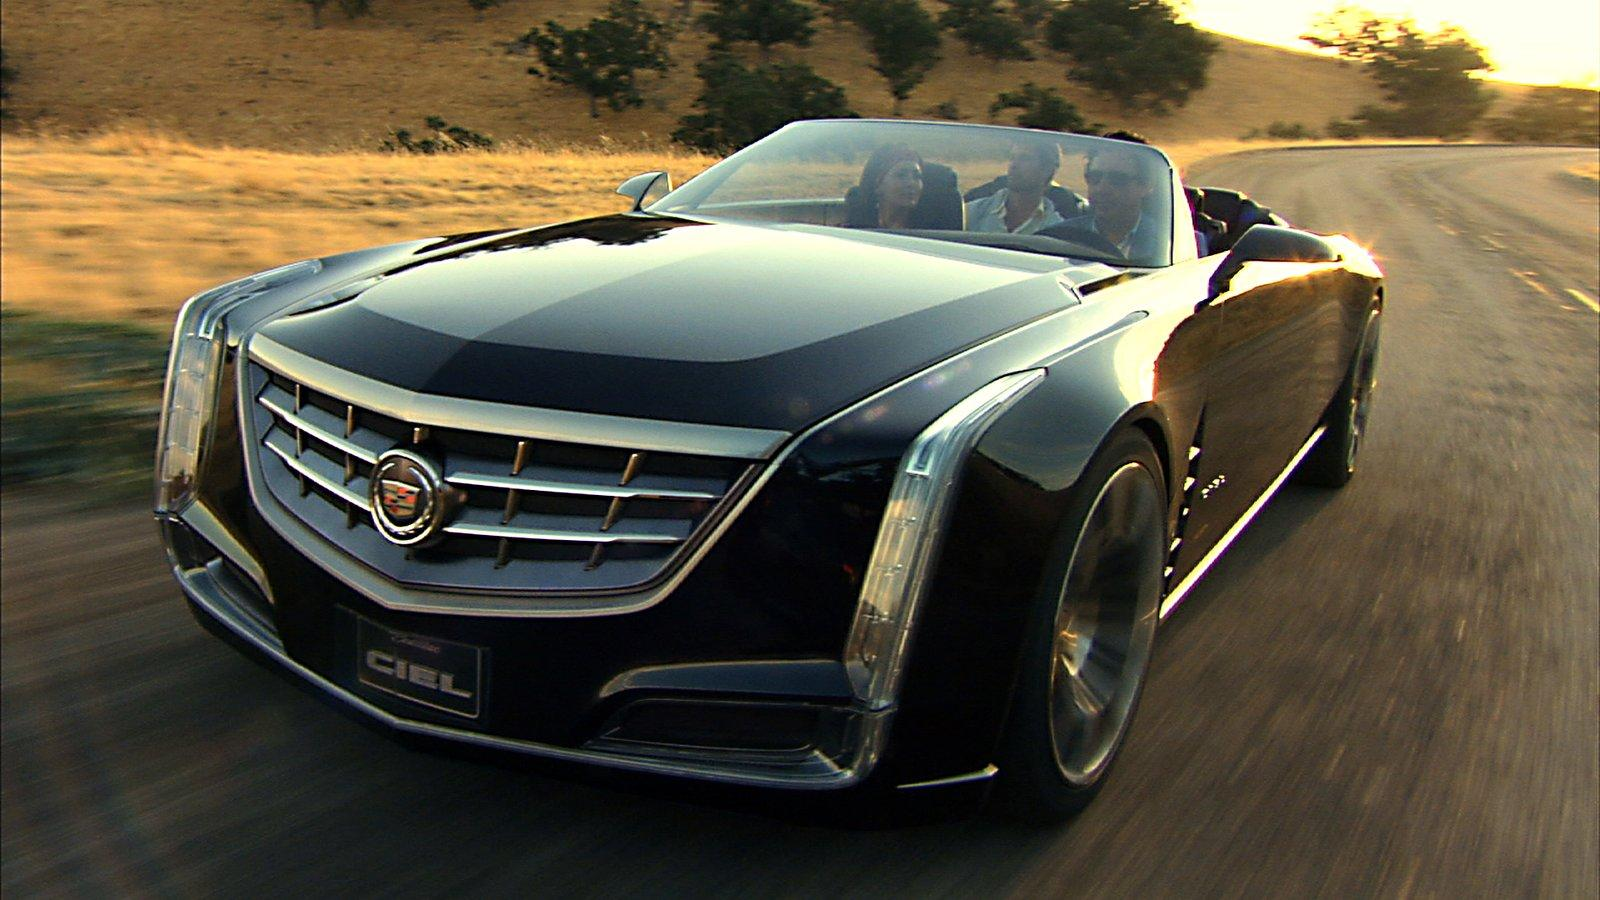 Index of /img/cadillac-ciel-concept